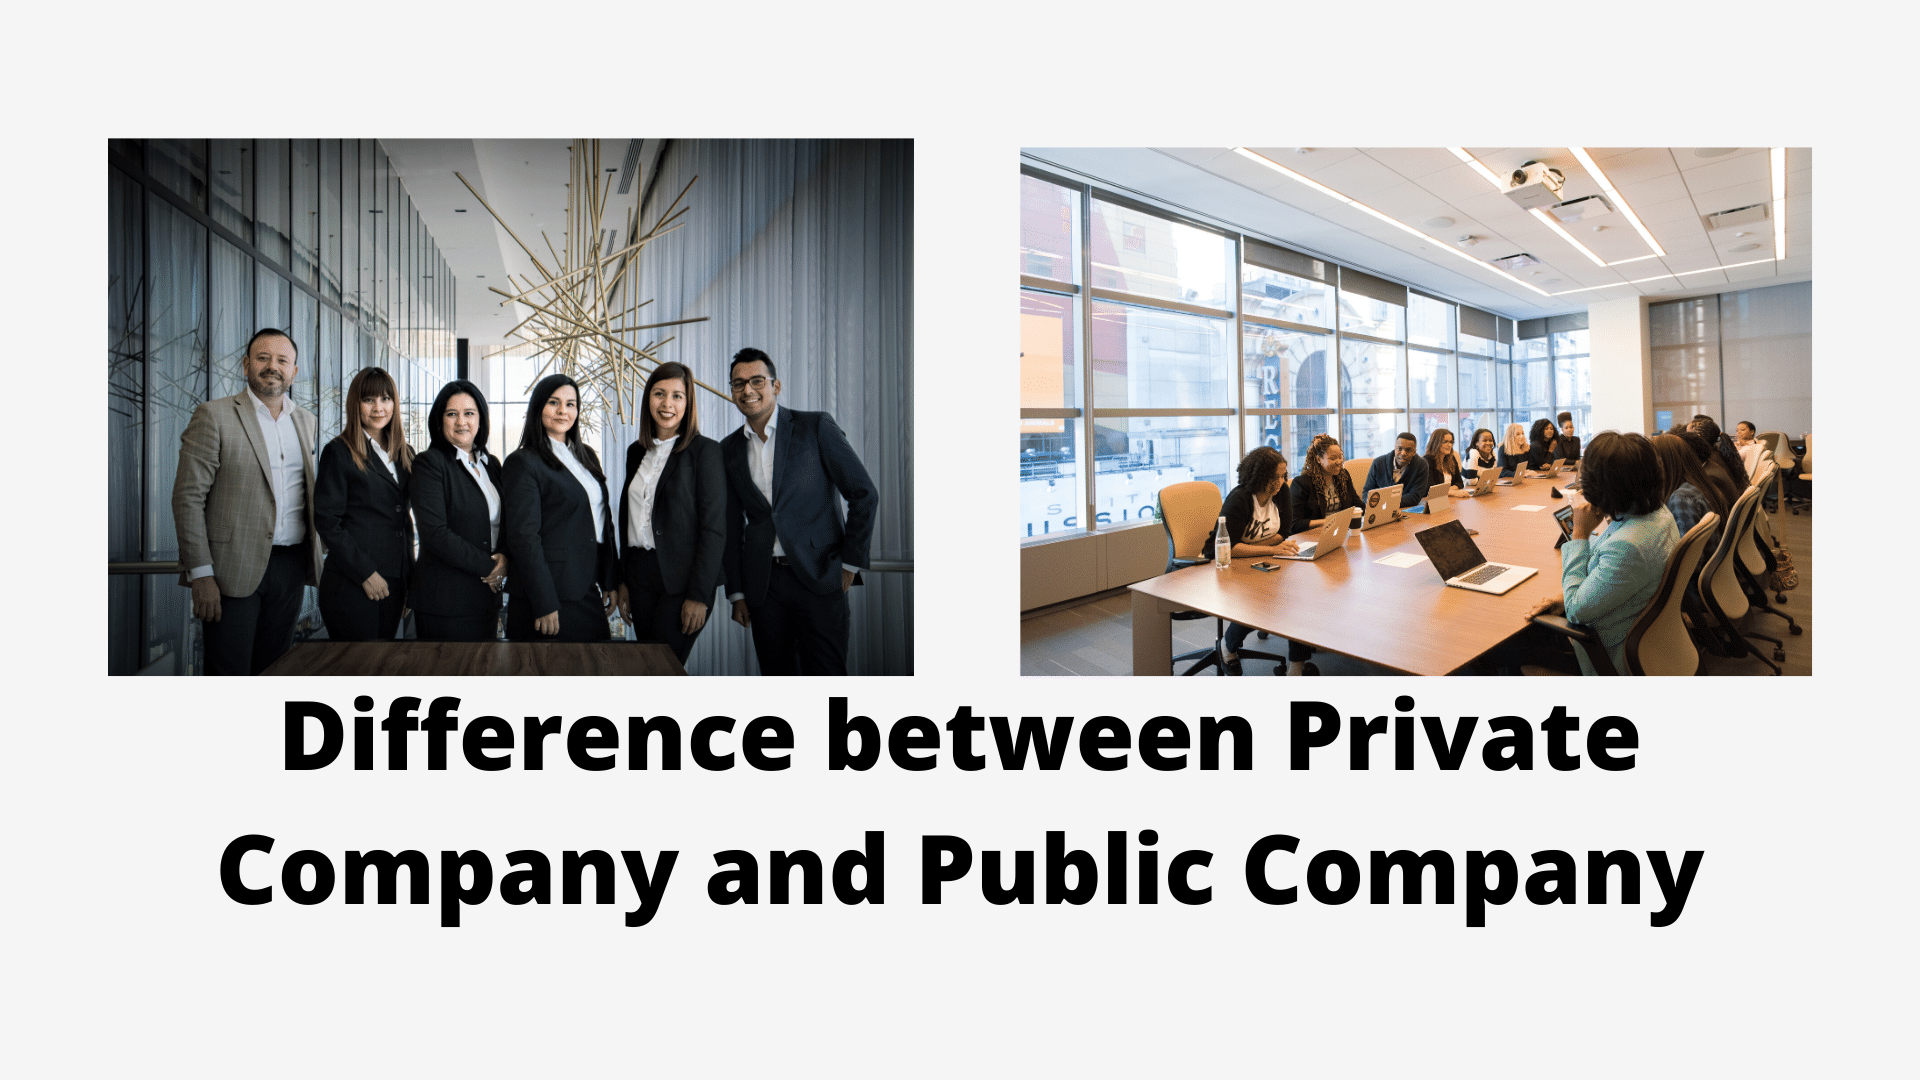 Difference between Private Company and Public Company